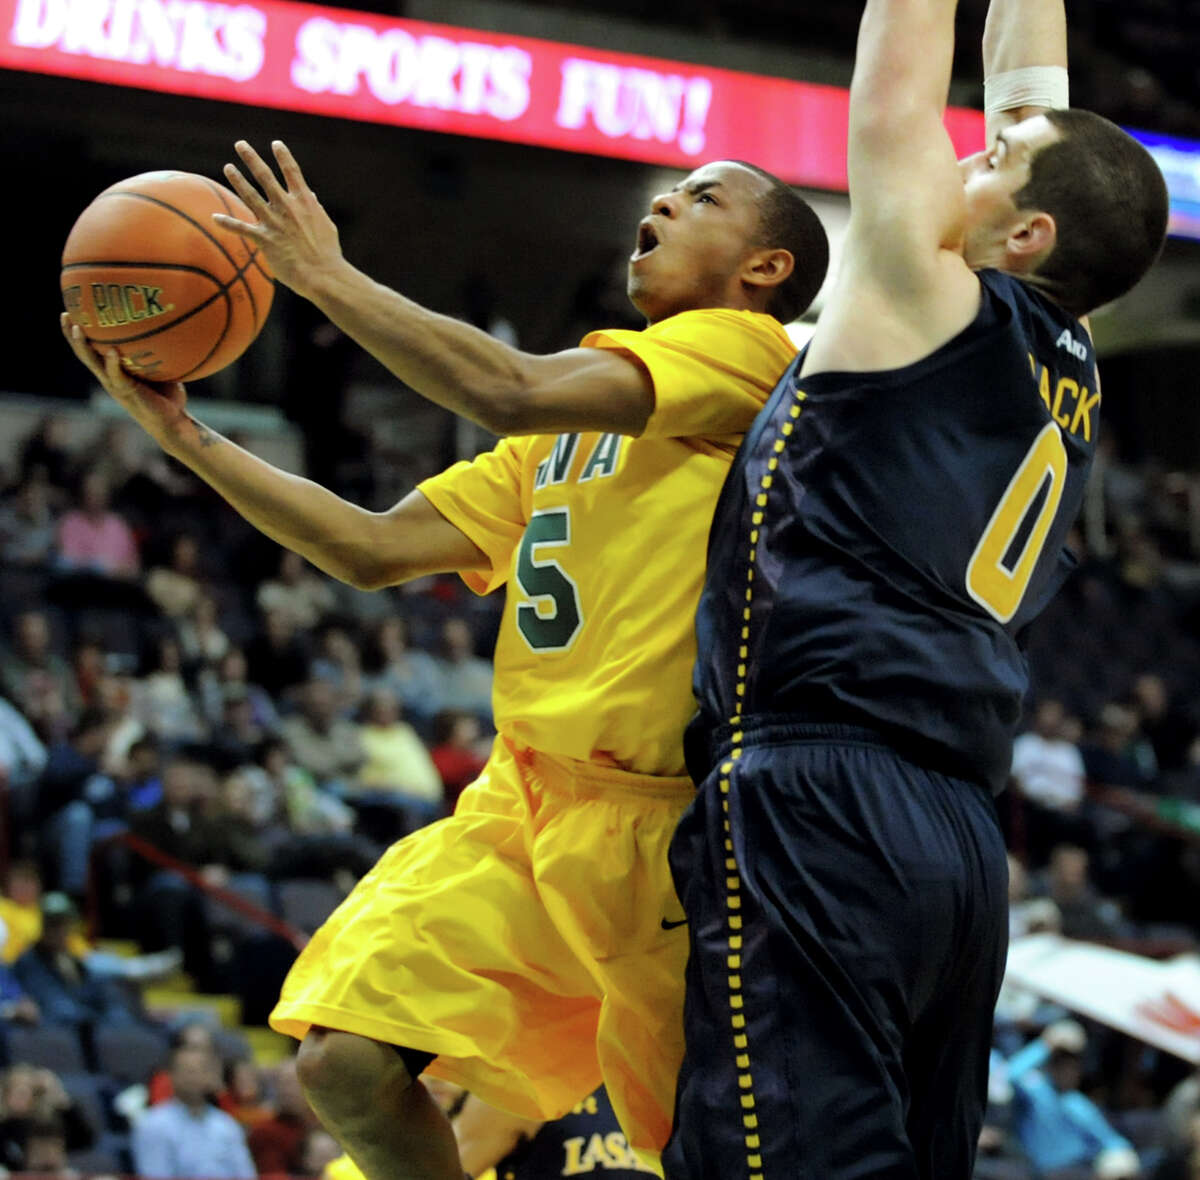 Siena's Evan Hymes (5), left, goes to the hoop as LaSalle's Steve Zack (0) defends during their basketball game on Saturday, Dec. 29, 2012, at Times Union Center in Albany, N.Y. (Cindy Schultz / Times Union)